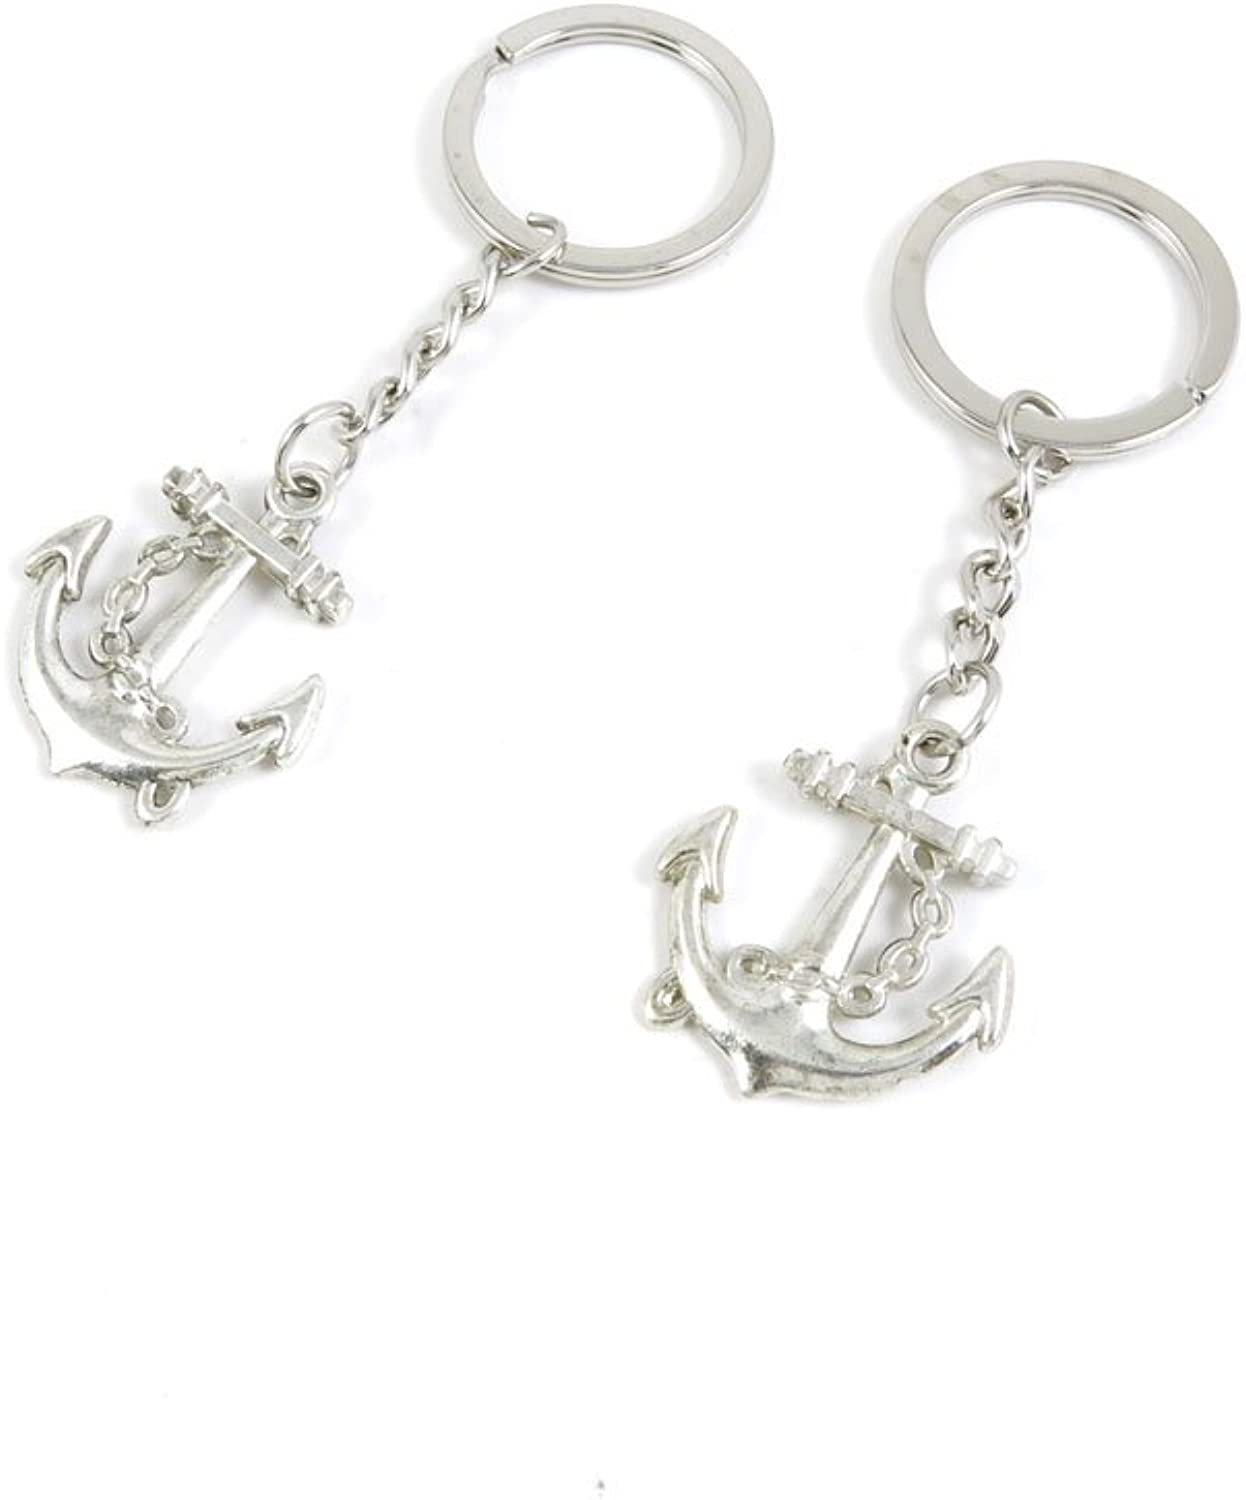 160 Pieces Fashion Jewelry Keyring Keychain Door Car Key Tag Ring Chain Supplier Supply Wholesale Bulk Lots K7HW8 Boat Anchor